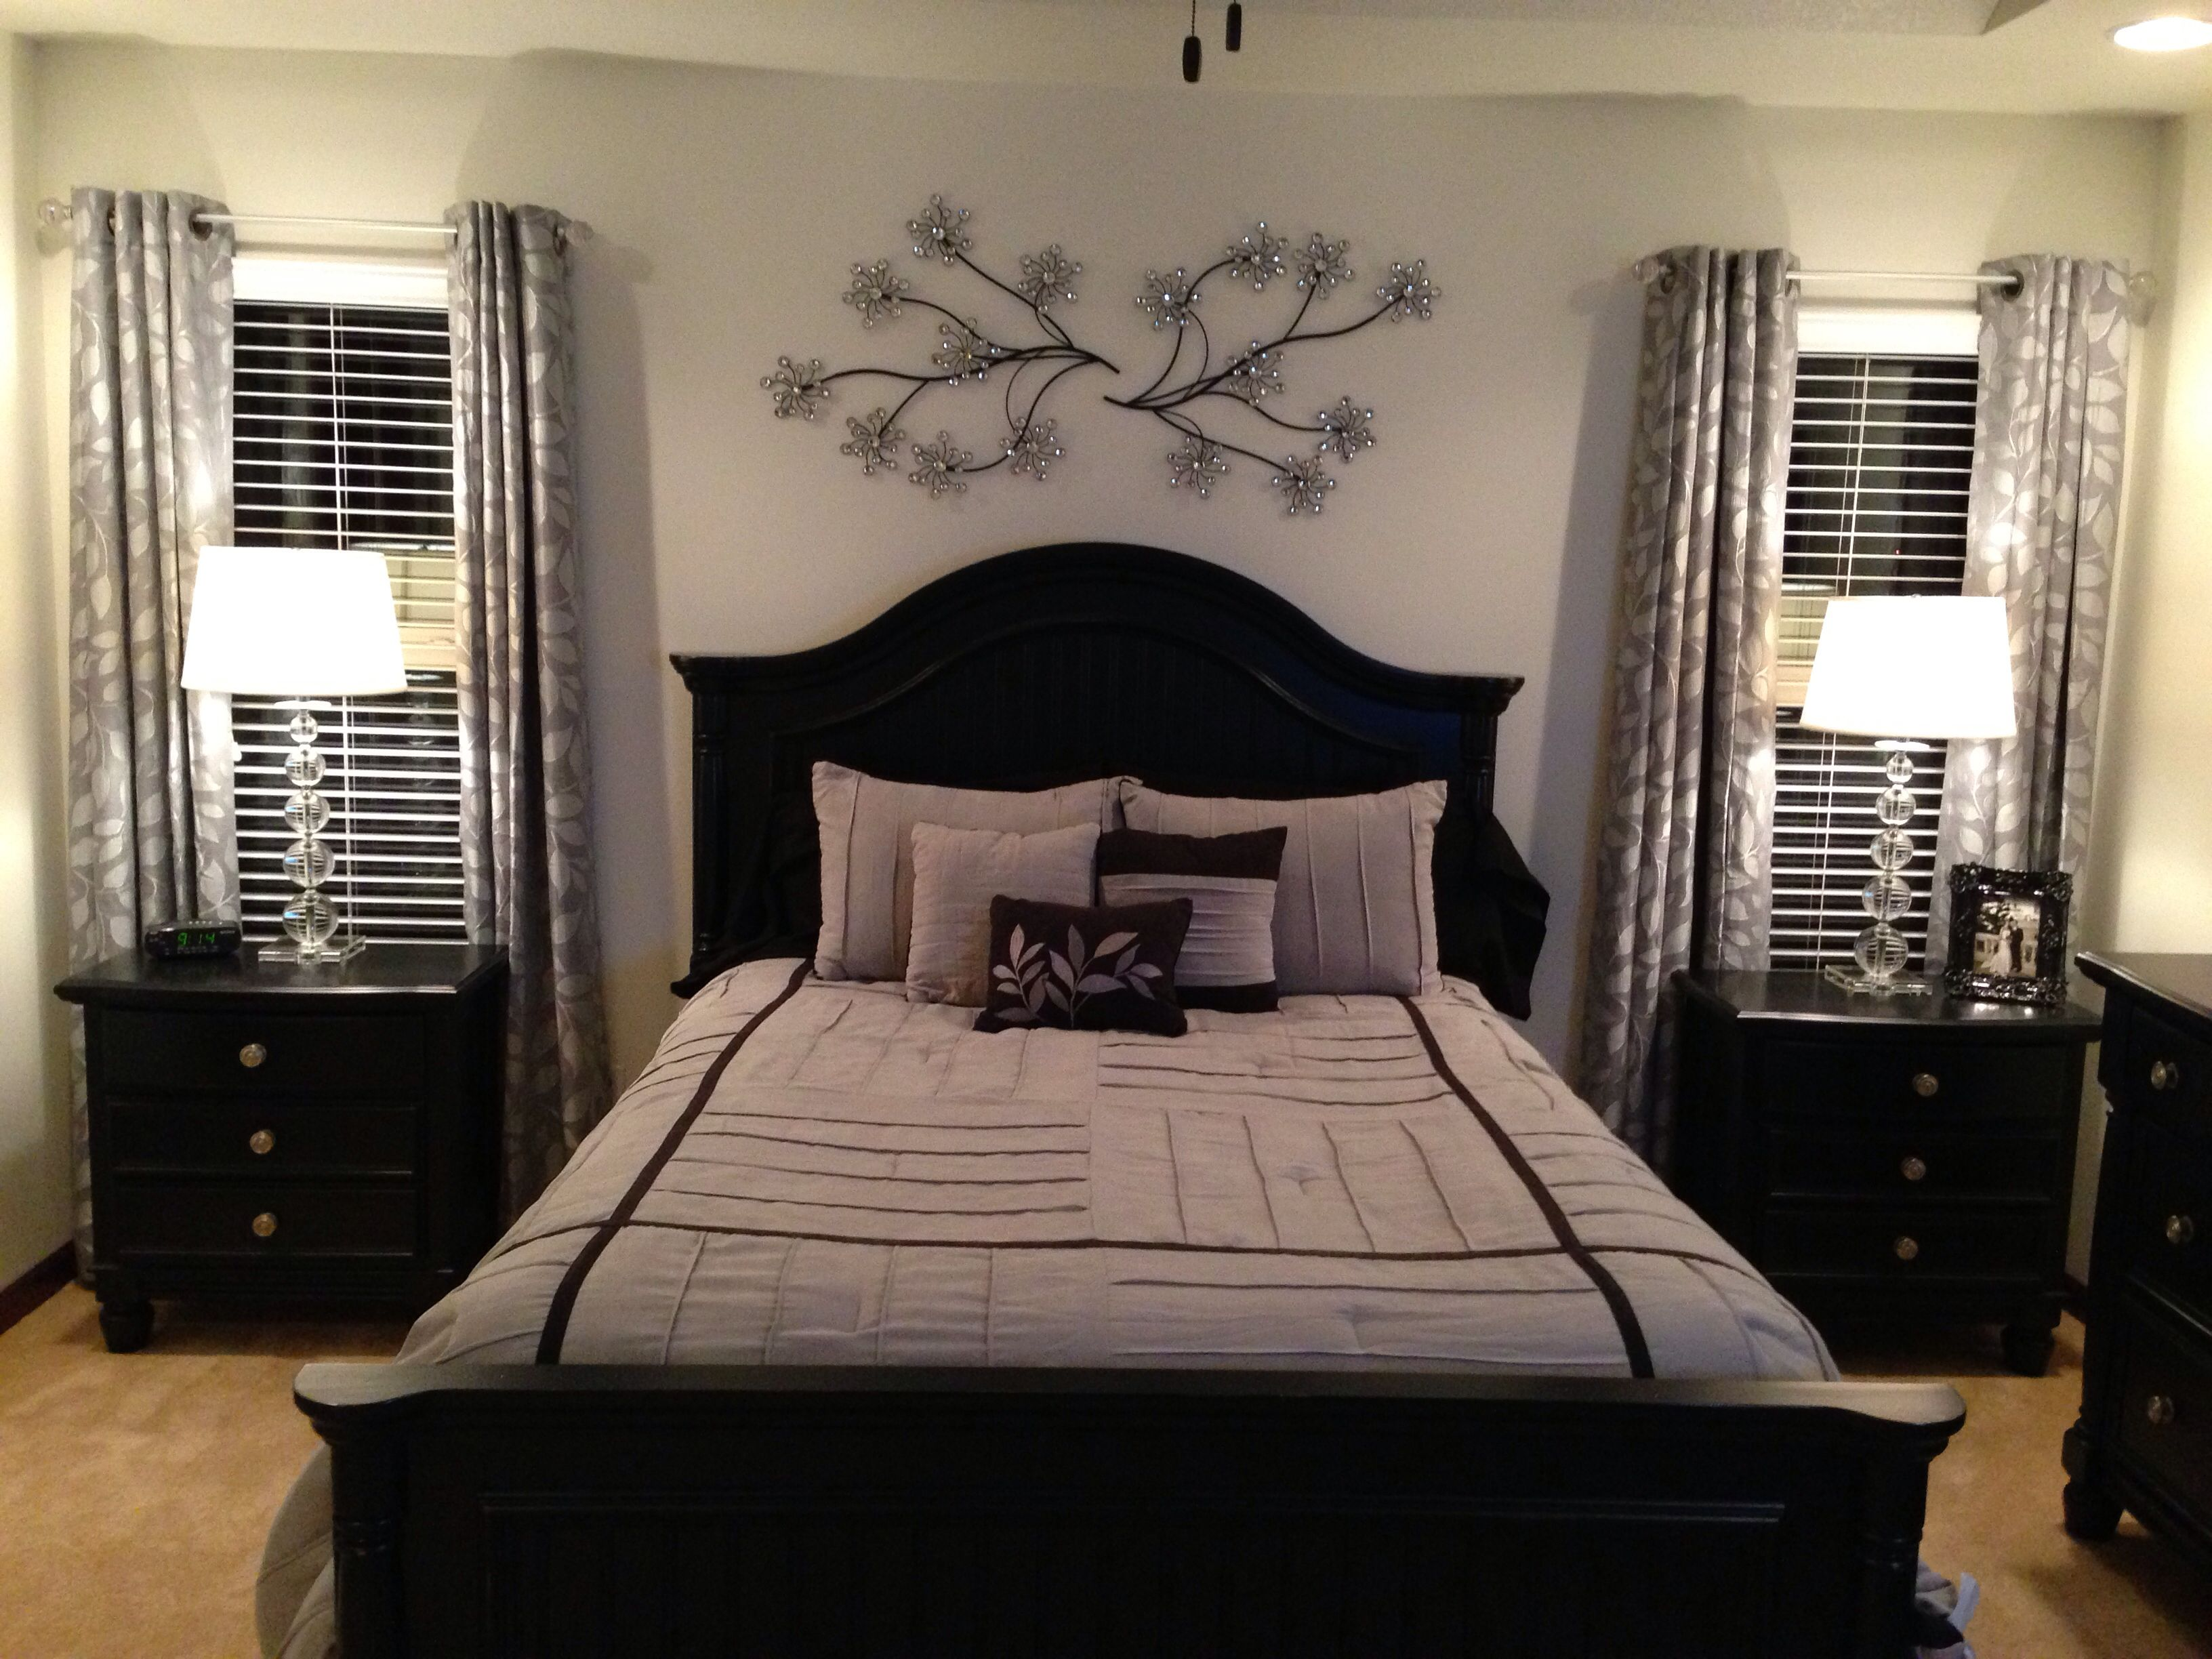 Burks Master Bedroom Furniture And Curtains From JCPenney Lamps - Kohls bedroom furniture